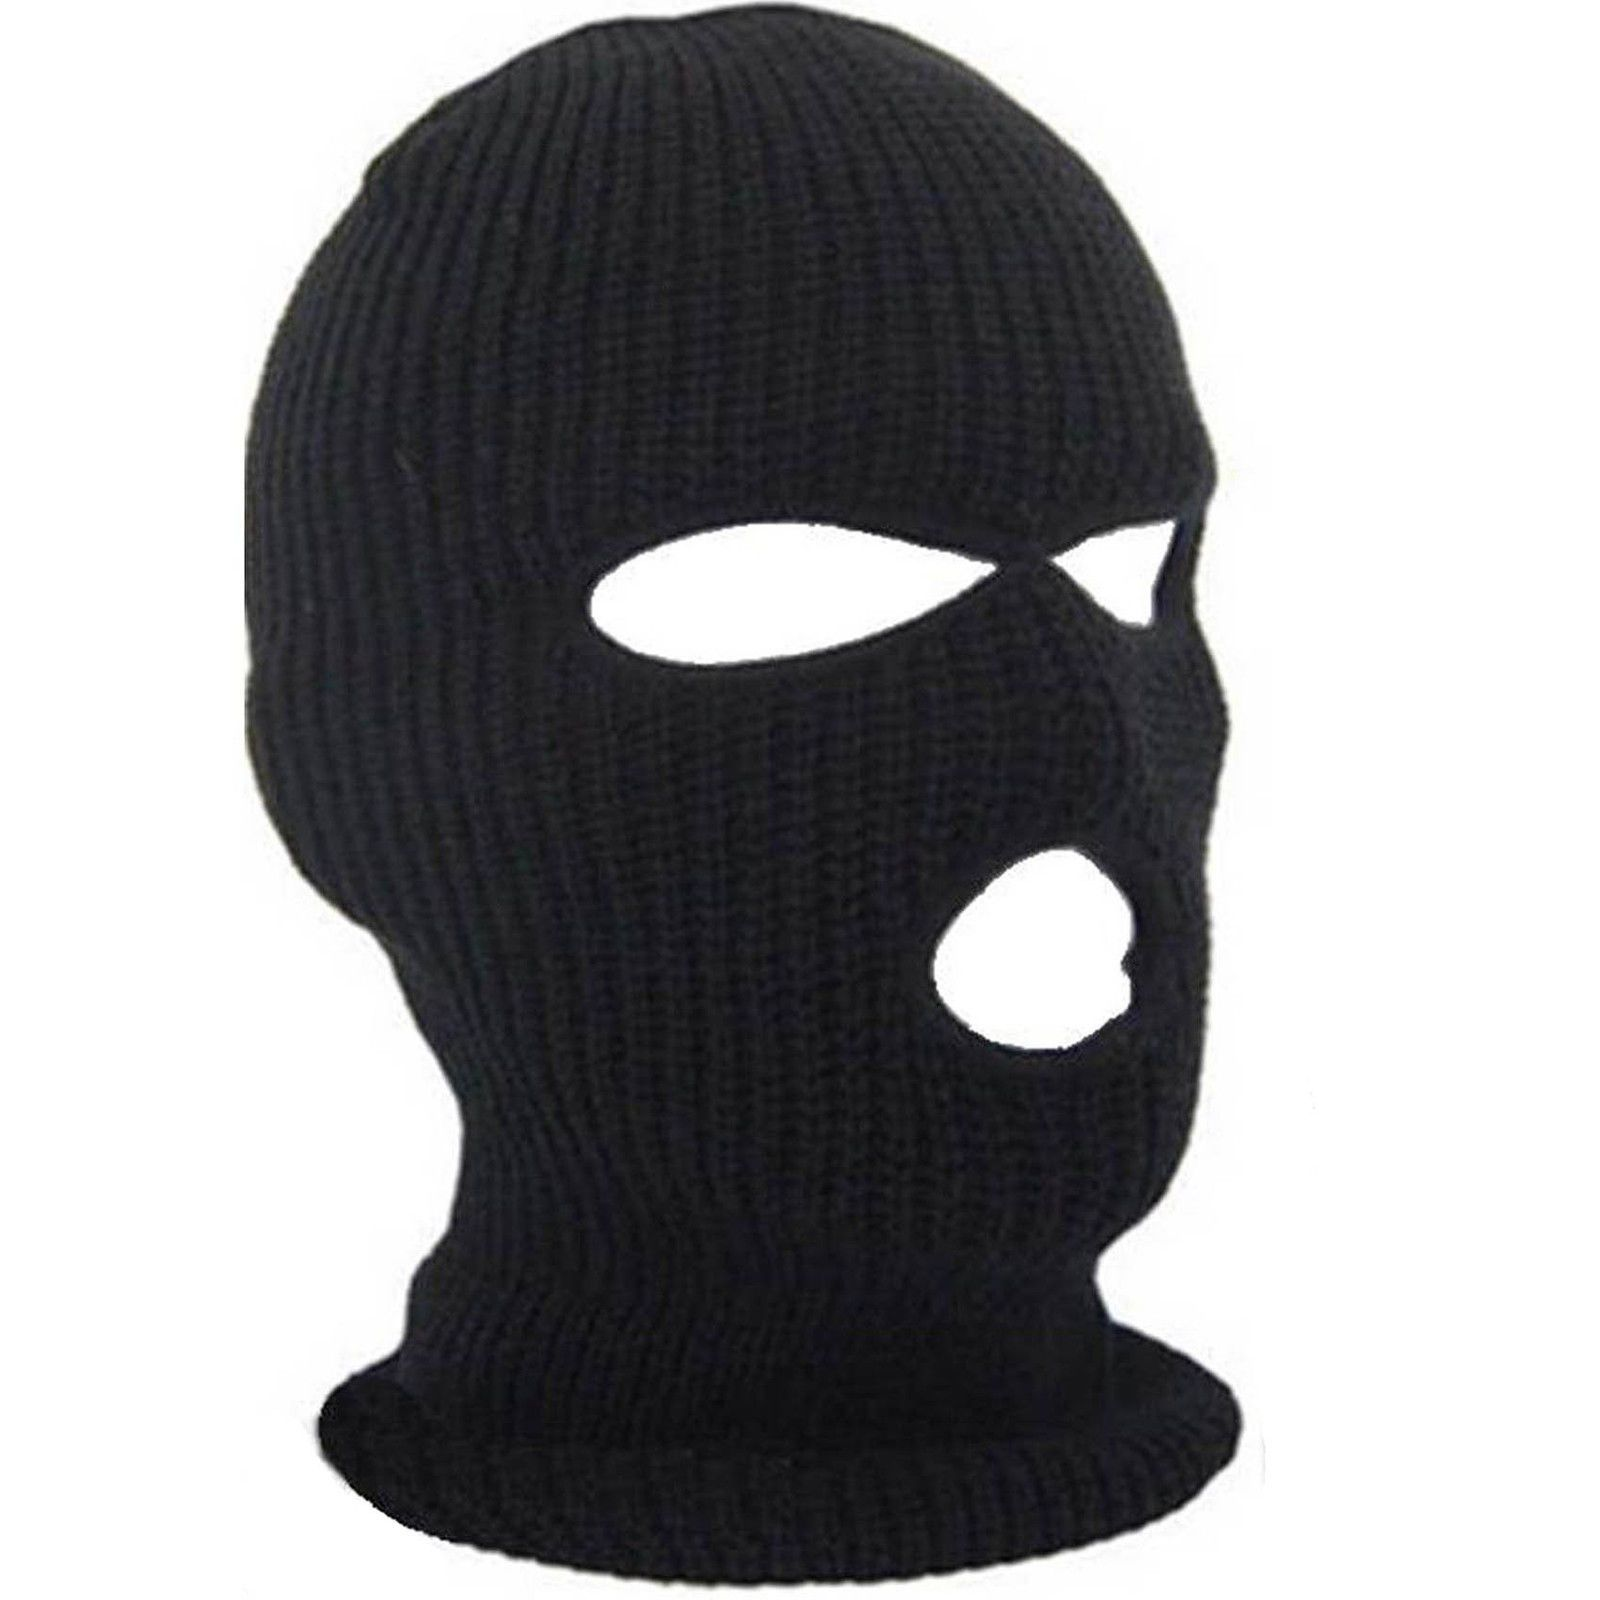 MEN S BOYS ADULTS ARMY S.A.S BLACK WOOLY BALACLAVA SOFT SKI MASK NECK  WARMER HAT in Clothes 70b4211fc1d